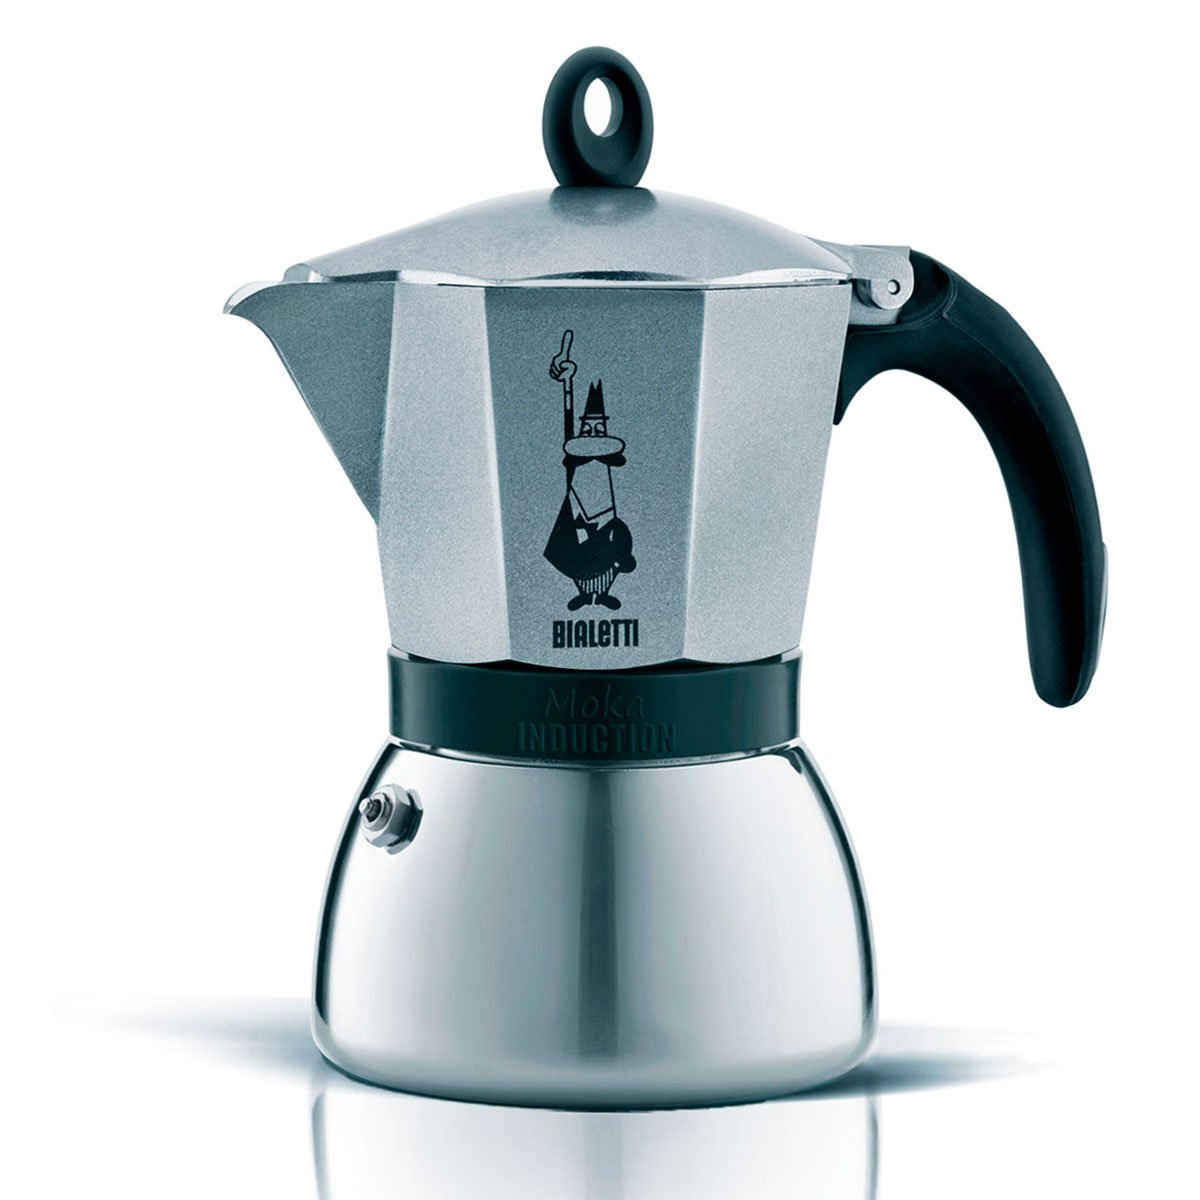 Cafetera Italiana Bialetti Moka Induction Gris 9 Tazas